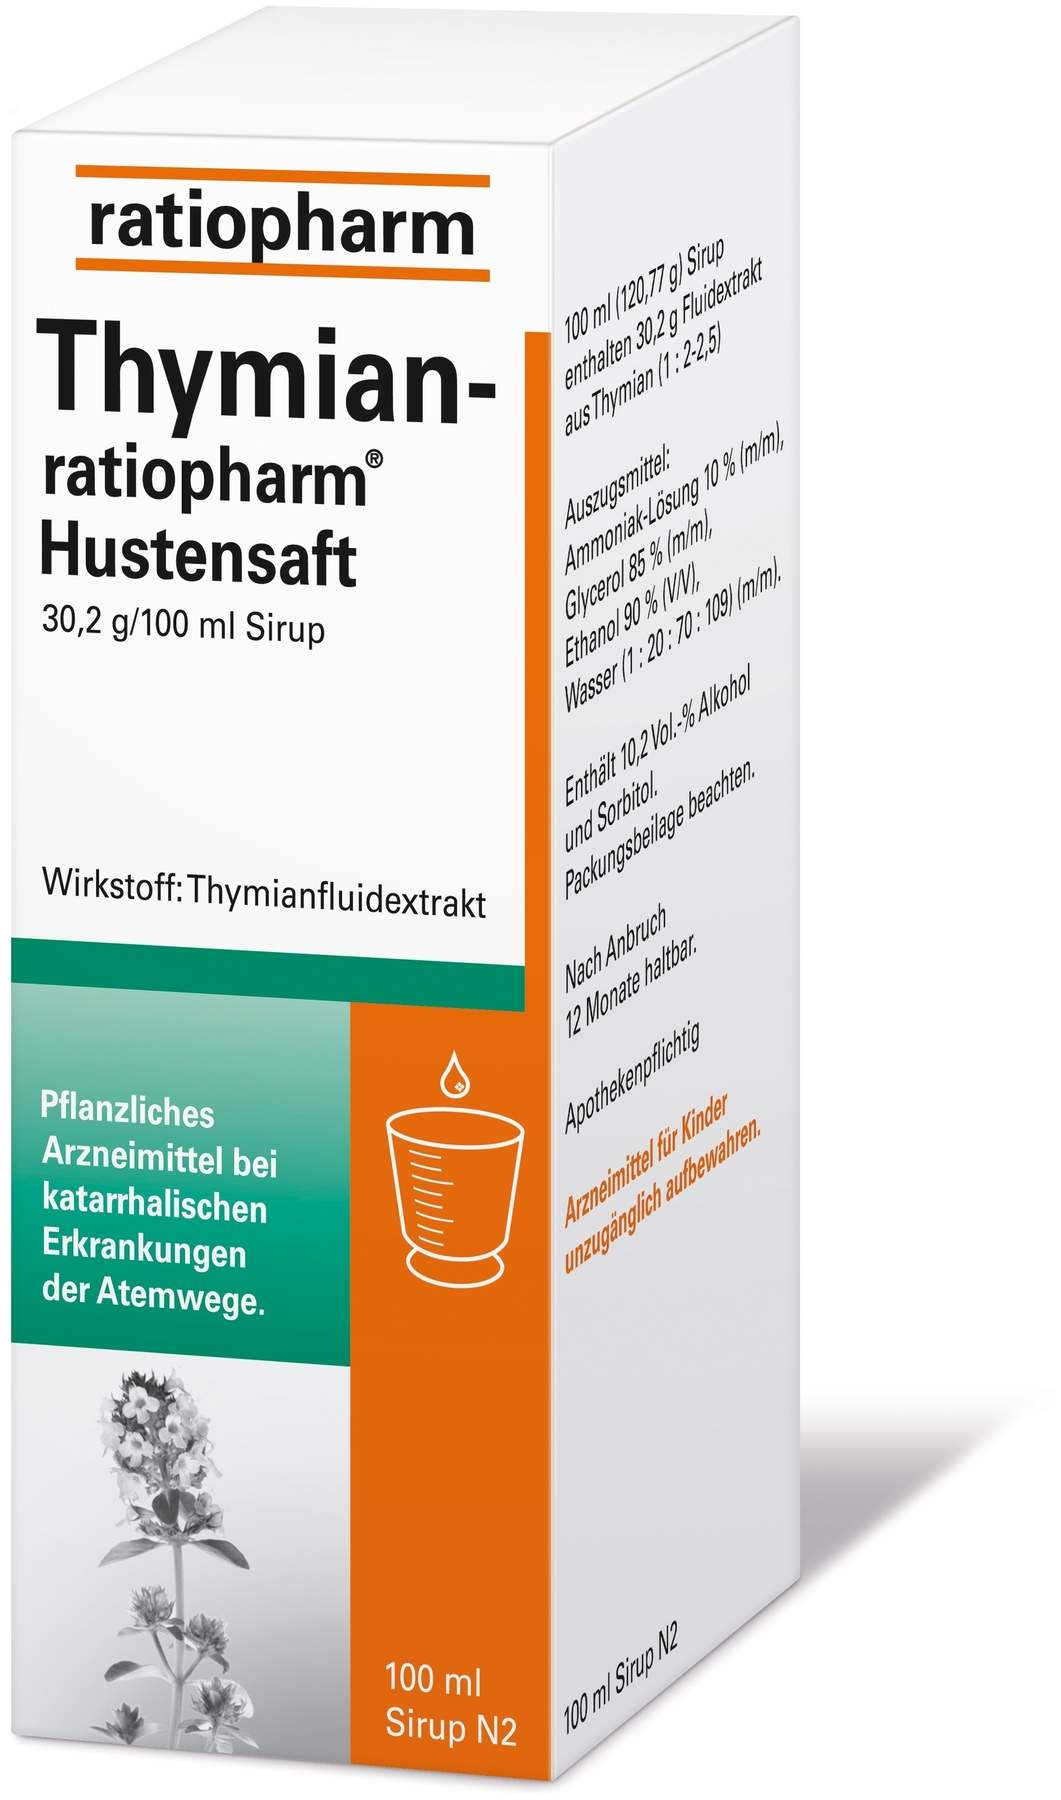 thymian ratiopharm hustensaft 100 ml sirup von ratiopharm gmbh online volksversand versandapotheke. Black Bedroom Furniture Sets. Home Design Ideas